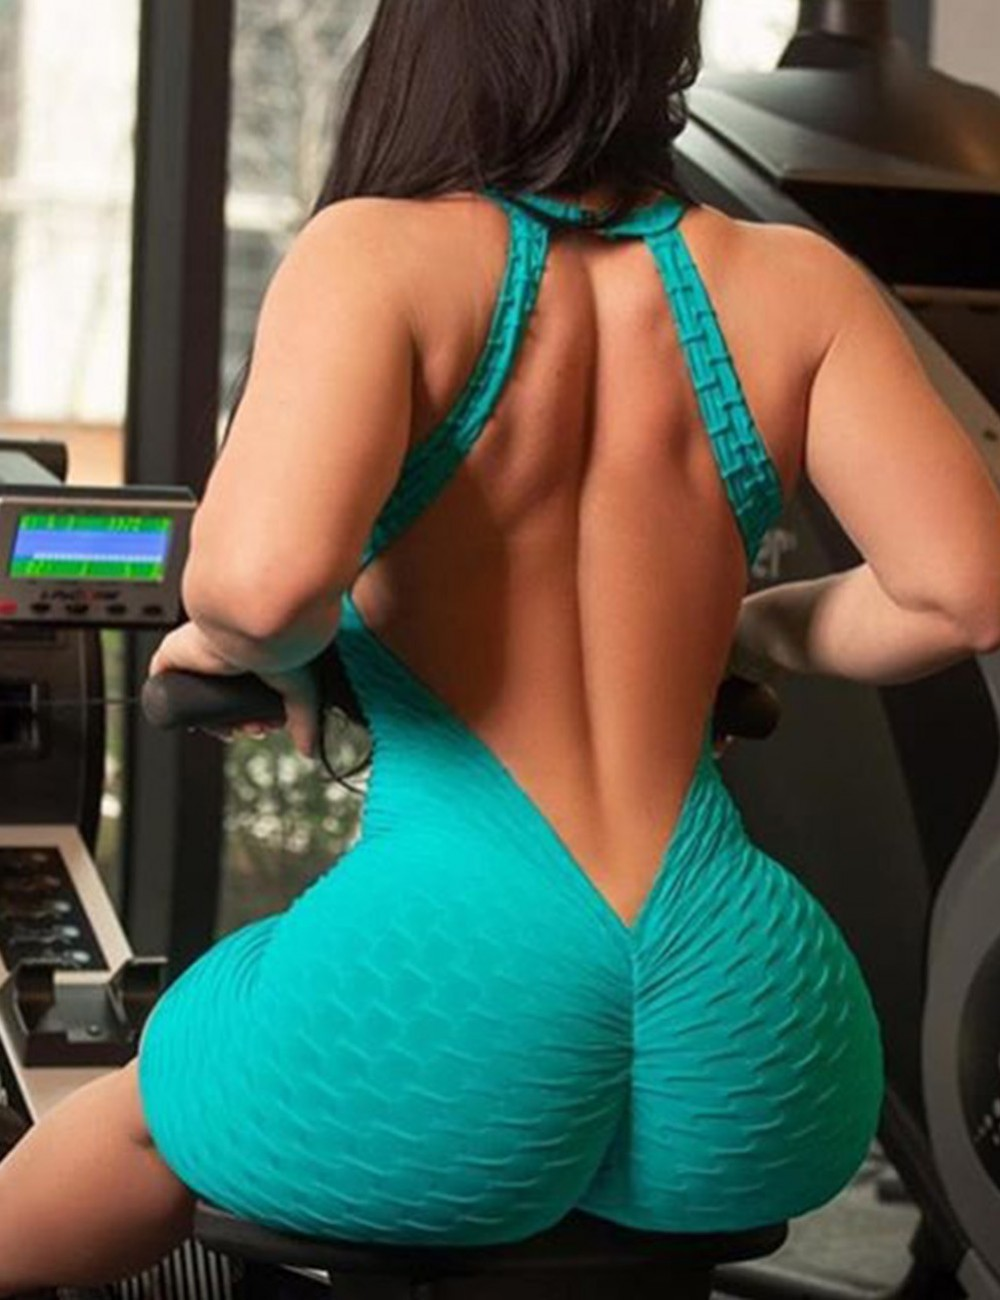 Fitness Sports Lift Butt Light Blue Jumpsuit Backless Outfit